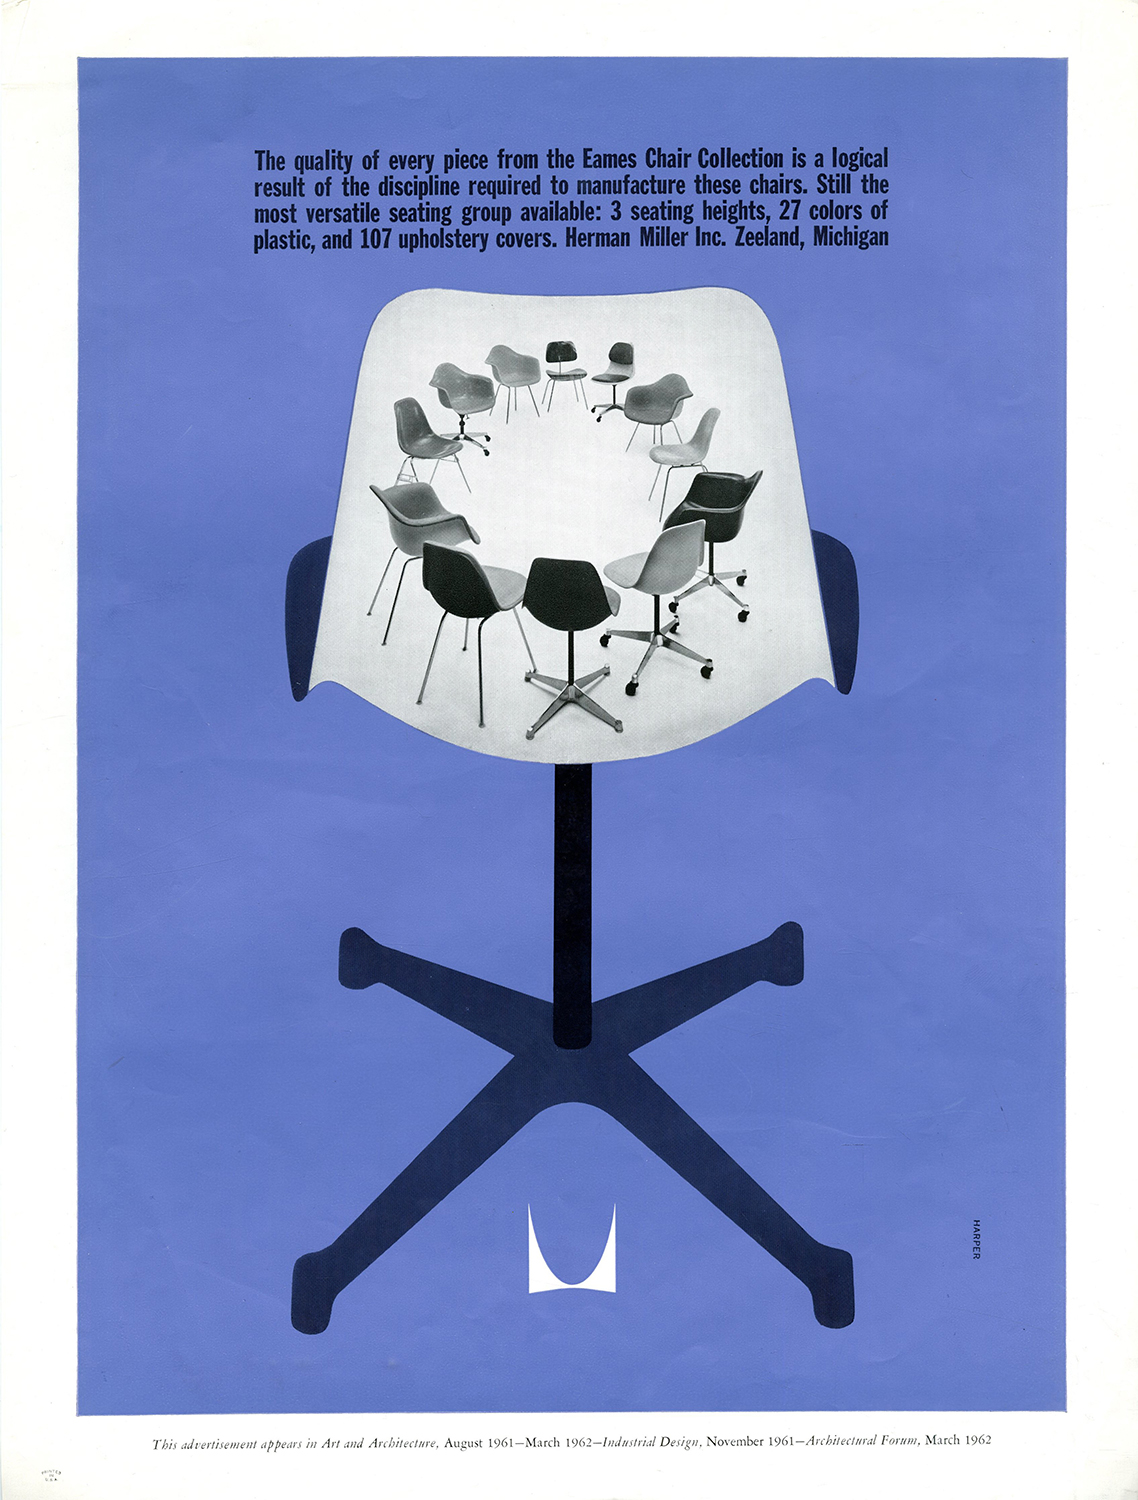 old Herman Miller advertisement